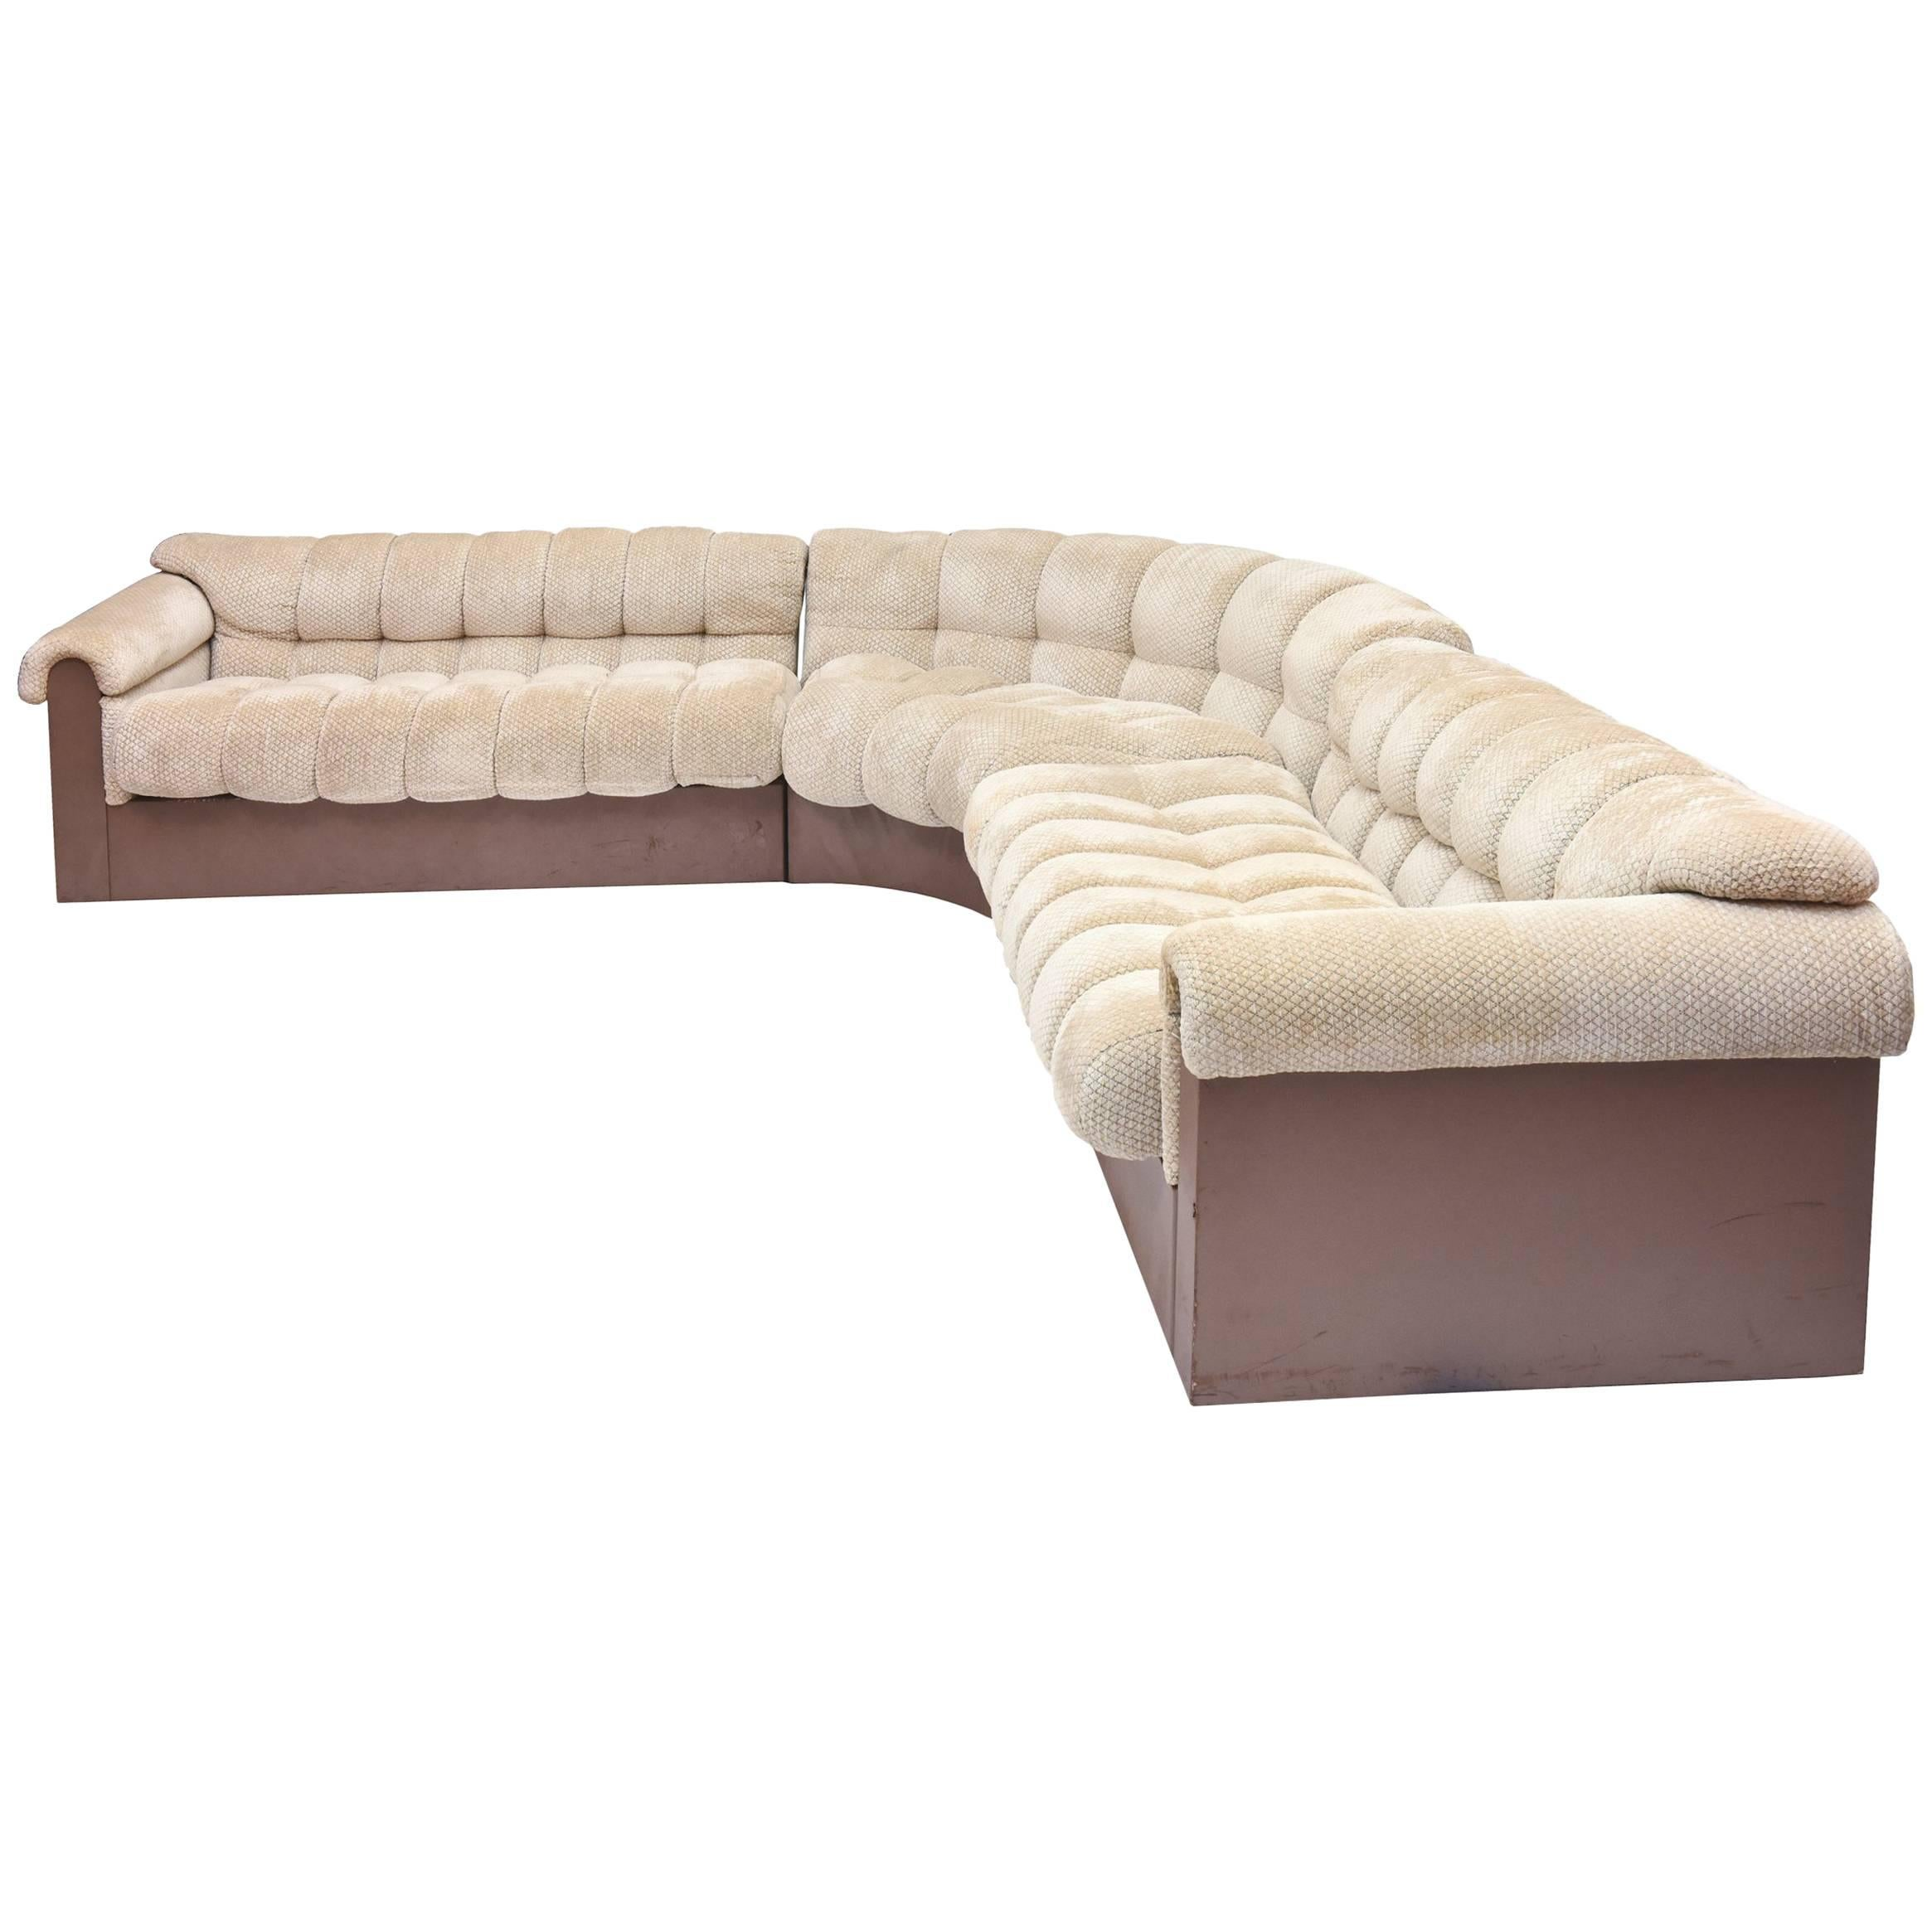 """American Modern """"Bounty Group"""" Sectional Sofa, Pace Collection by Davanzati"""